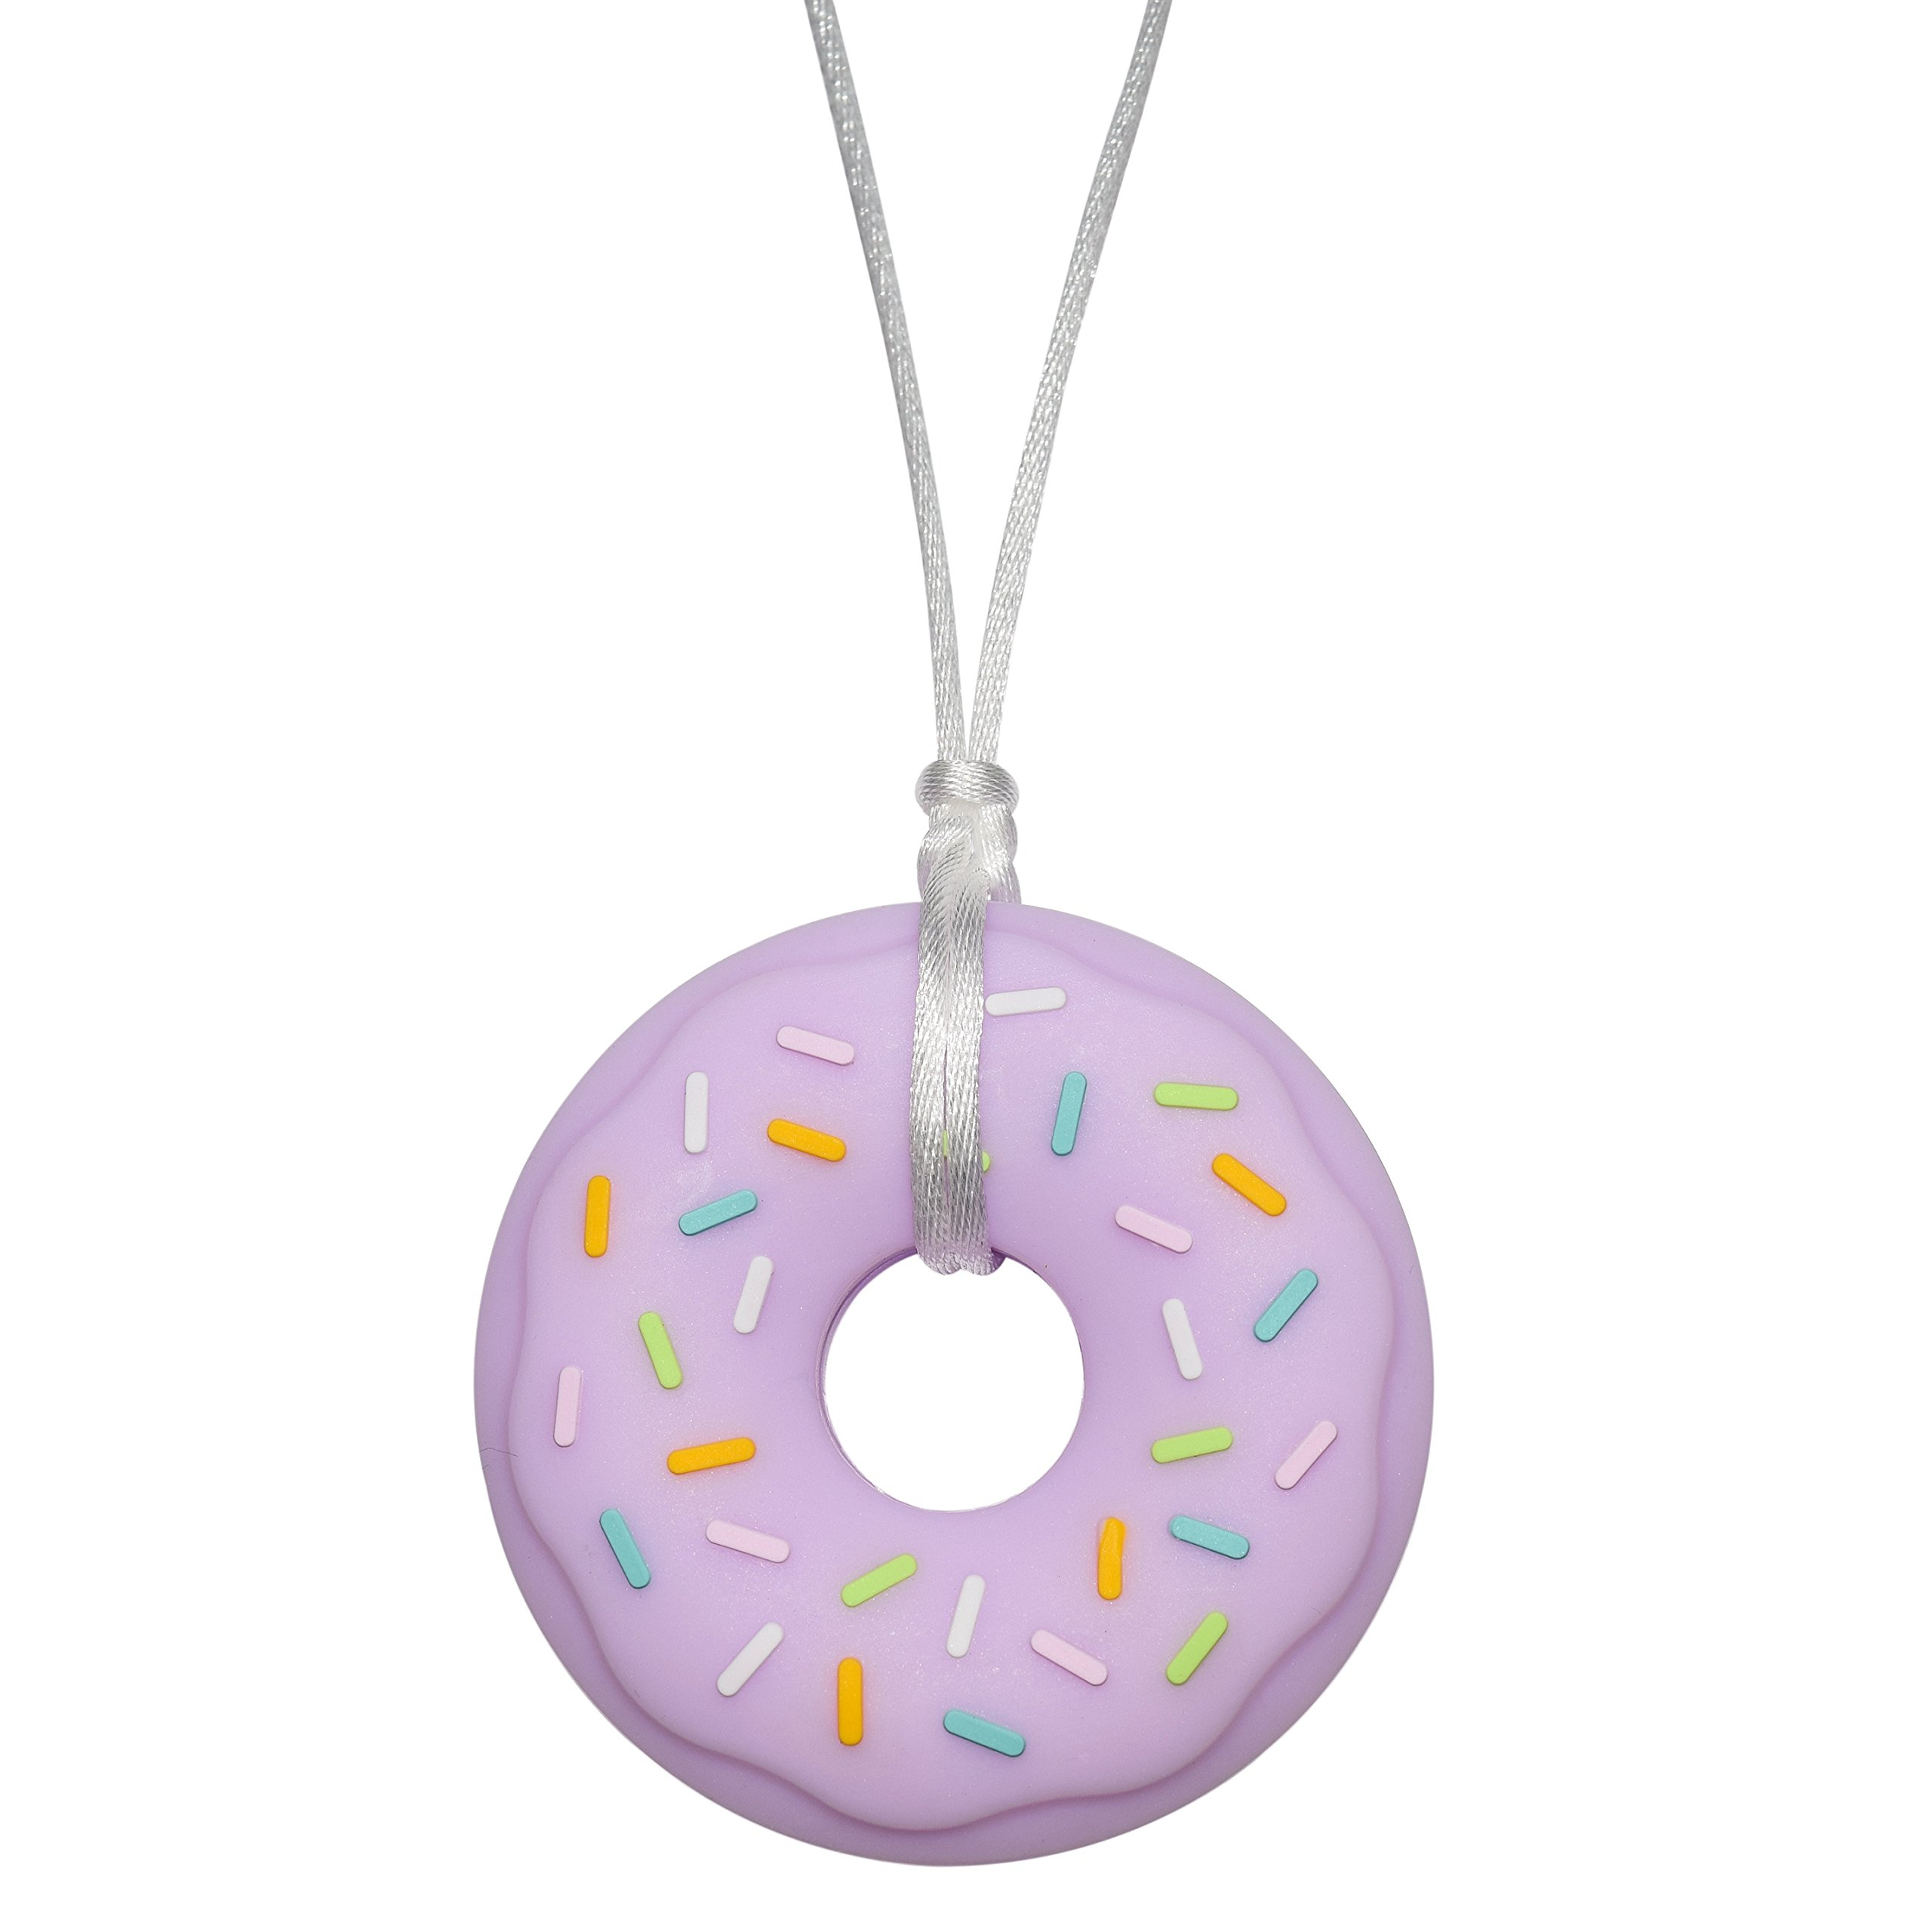 Sensory Oral Motor Aide Chewelry Necklace - Munchables Donut Chewy (Purple on White Cord)